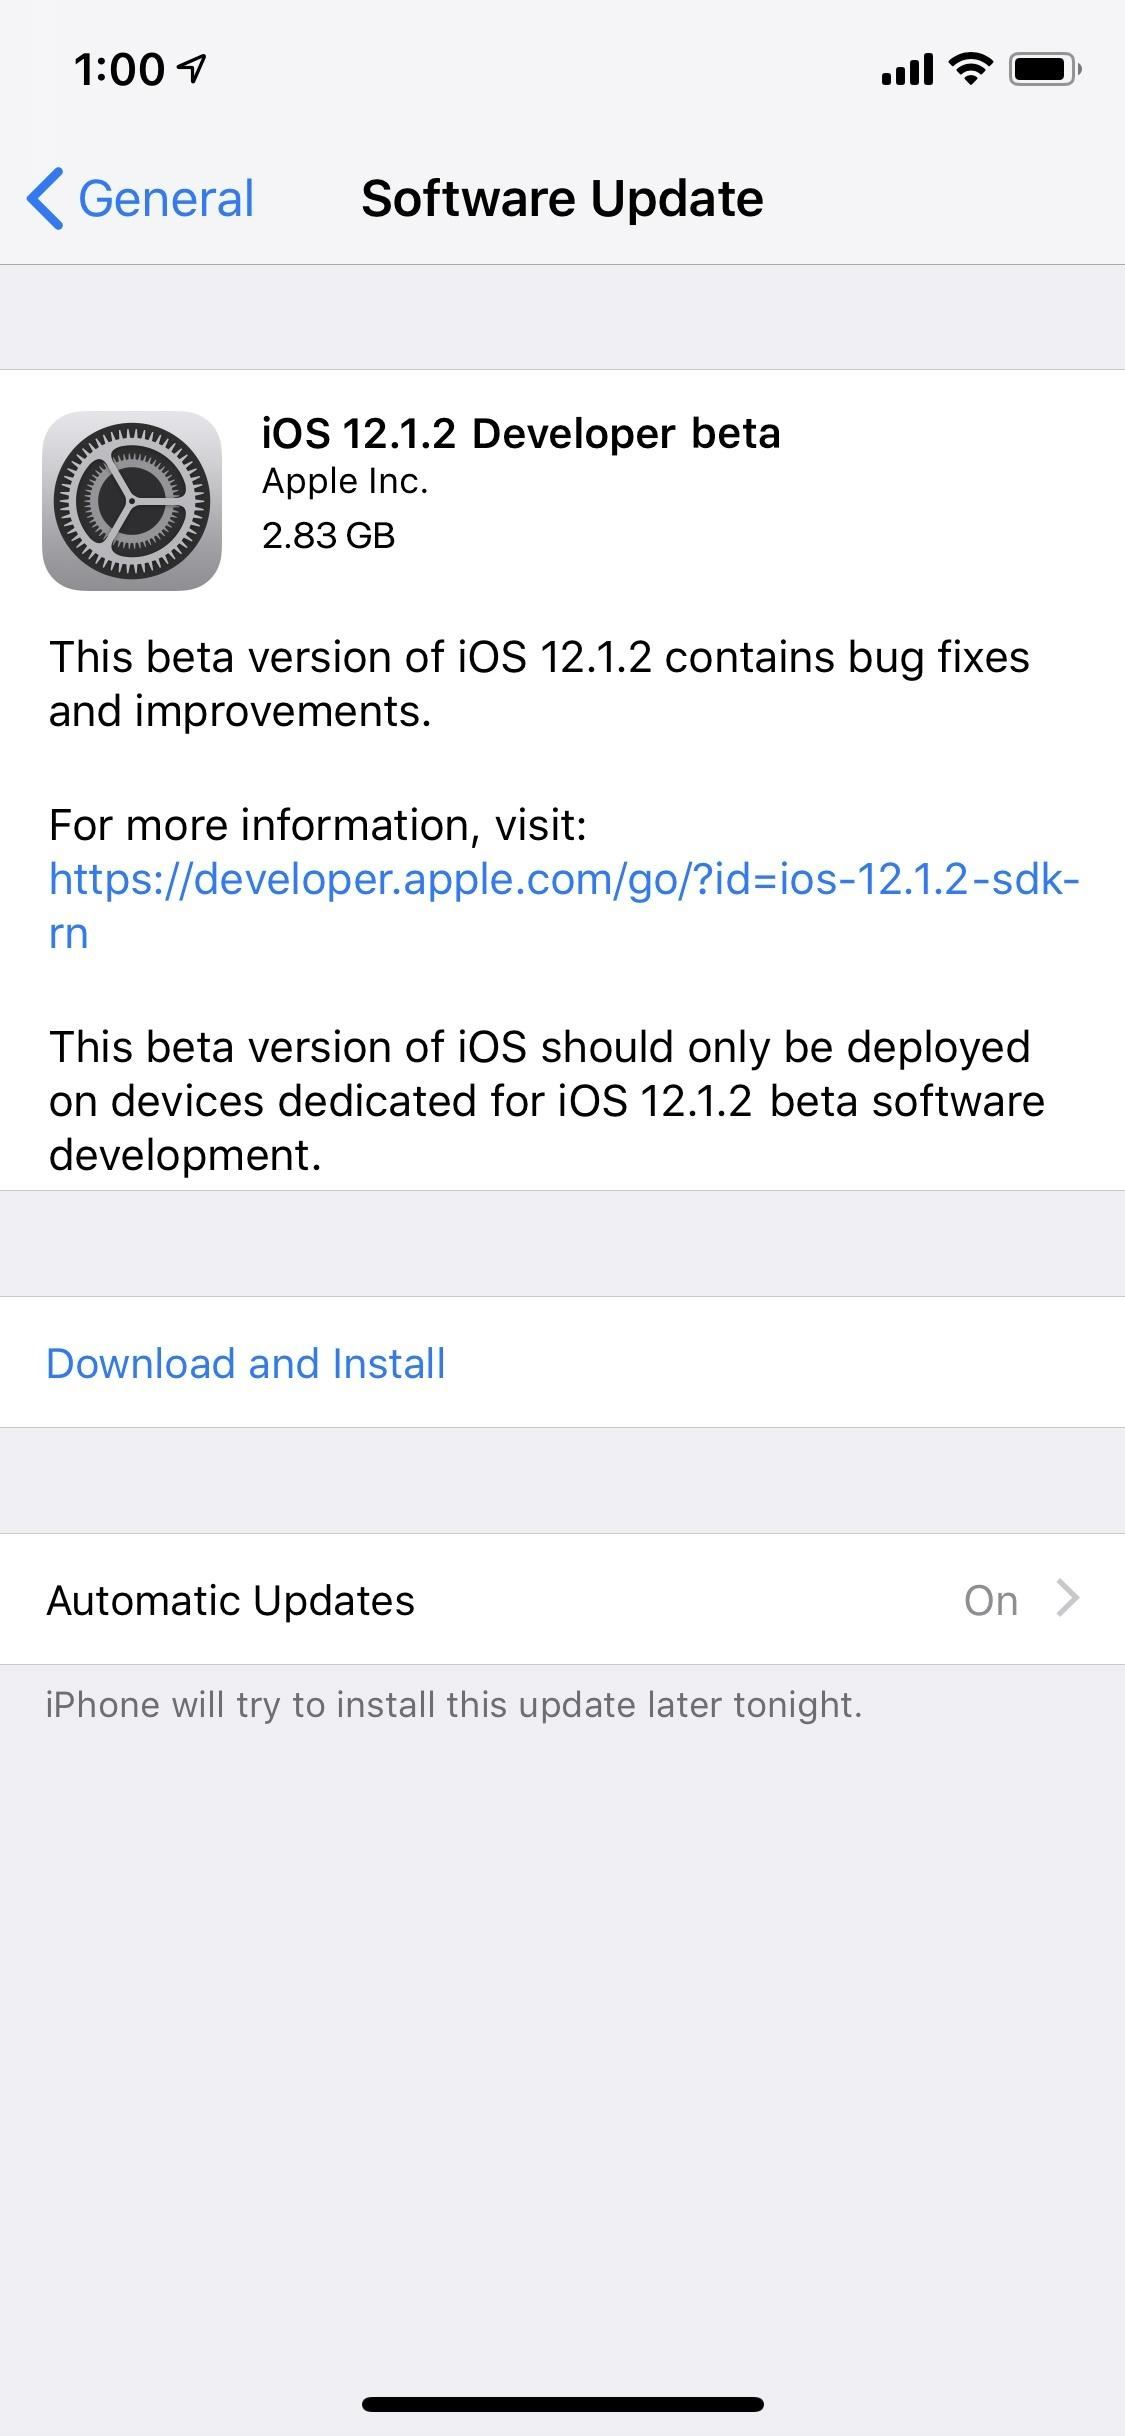 Apple Just Released the First iOS 12.1.2 Developer Beta